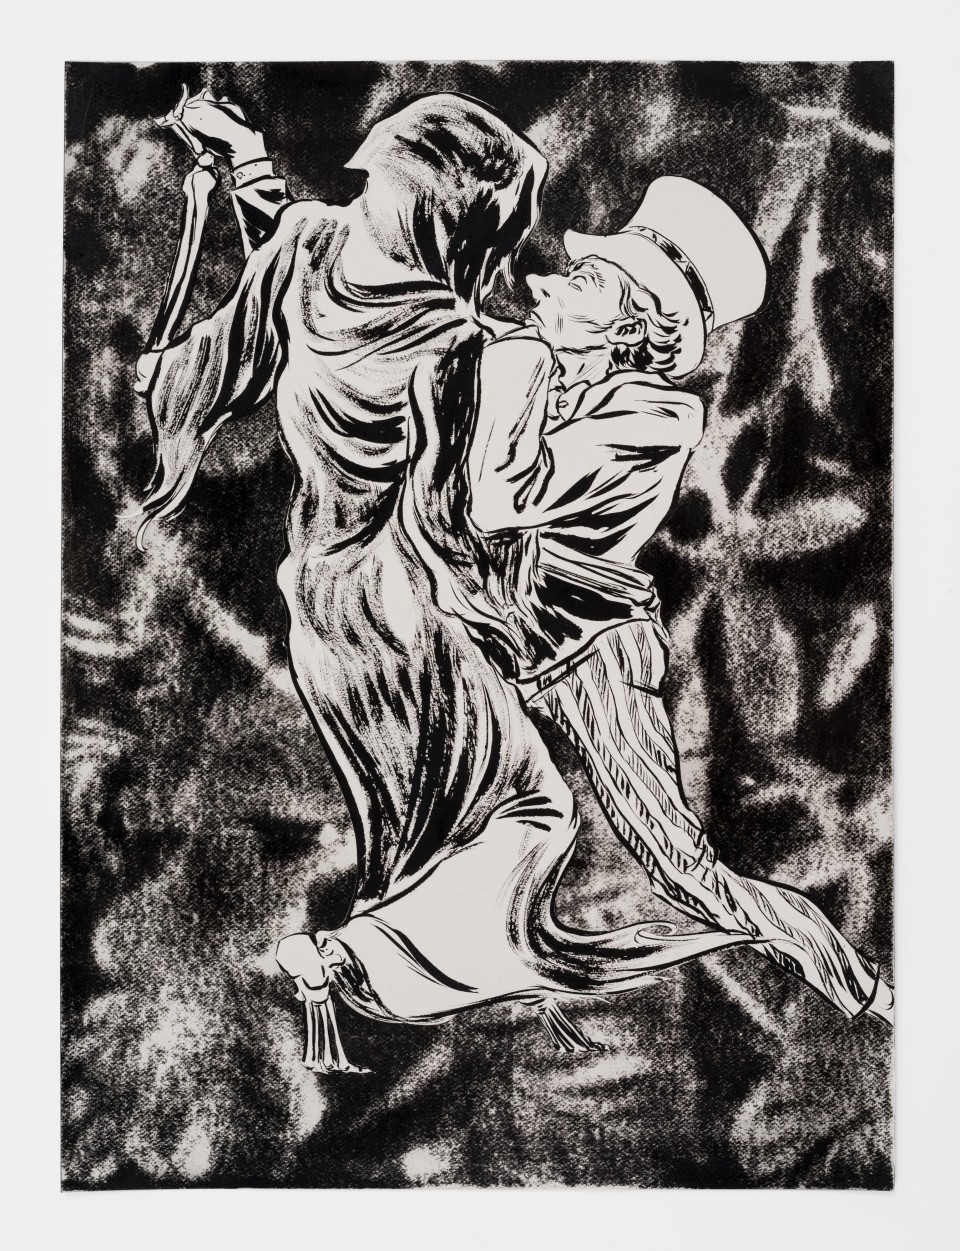 Image: Mark Thomas Gibson  The Lovers (Part 2), 2020  ink on paper  30 x 22 inches (76.2 x 55.9 cm)